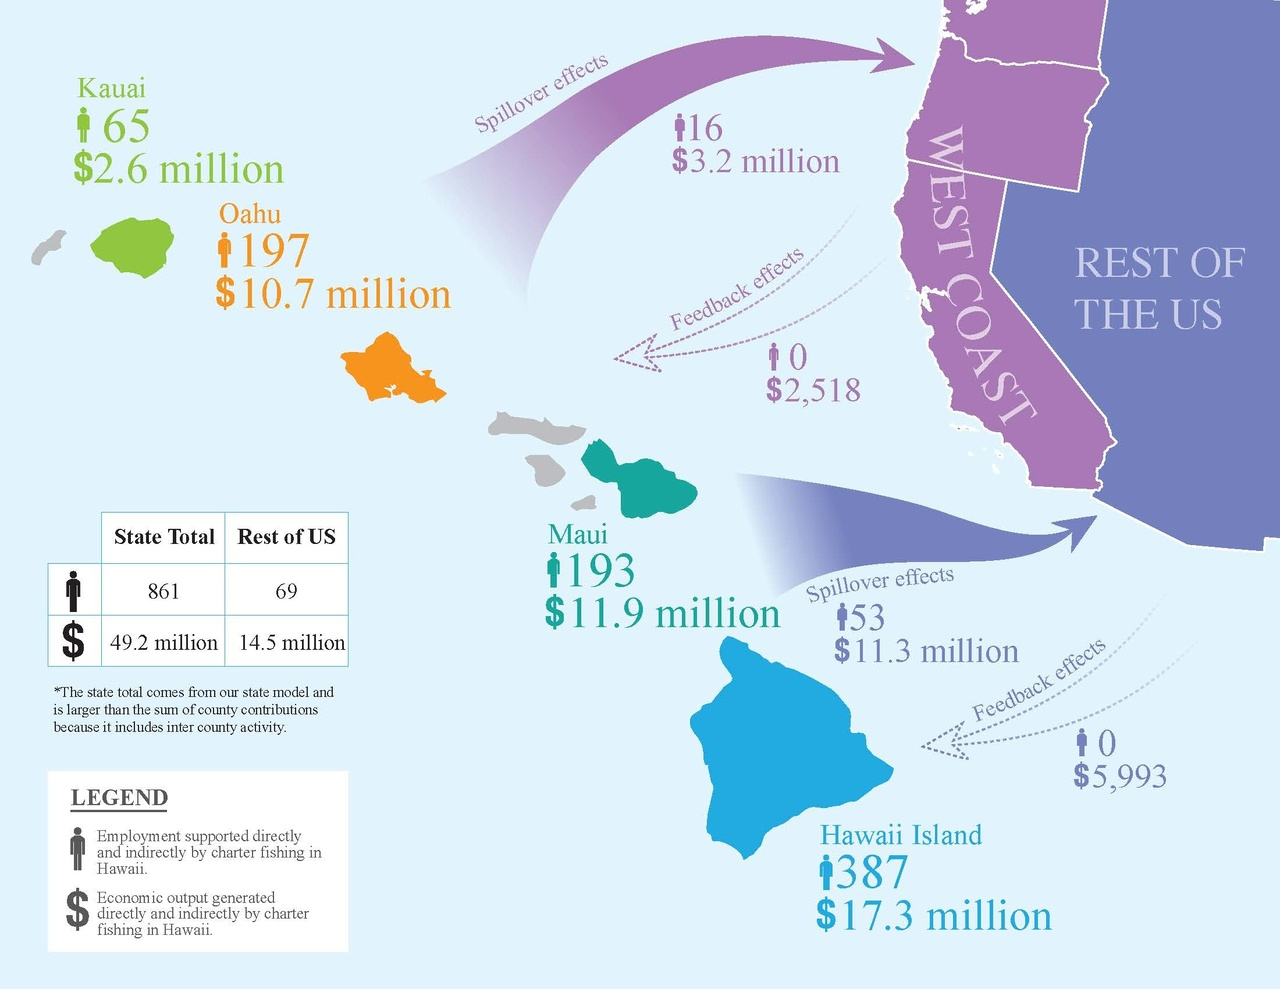 This figure shows the flow of economic contributions generated in 2011 from charter fishing in Hawaiʻi to the west coast and the rest of the U.S. mainland.